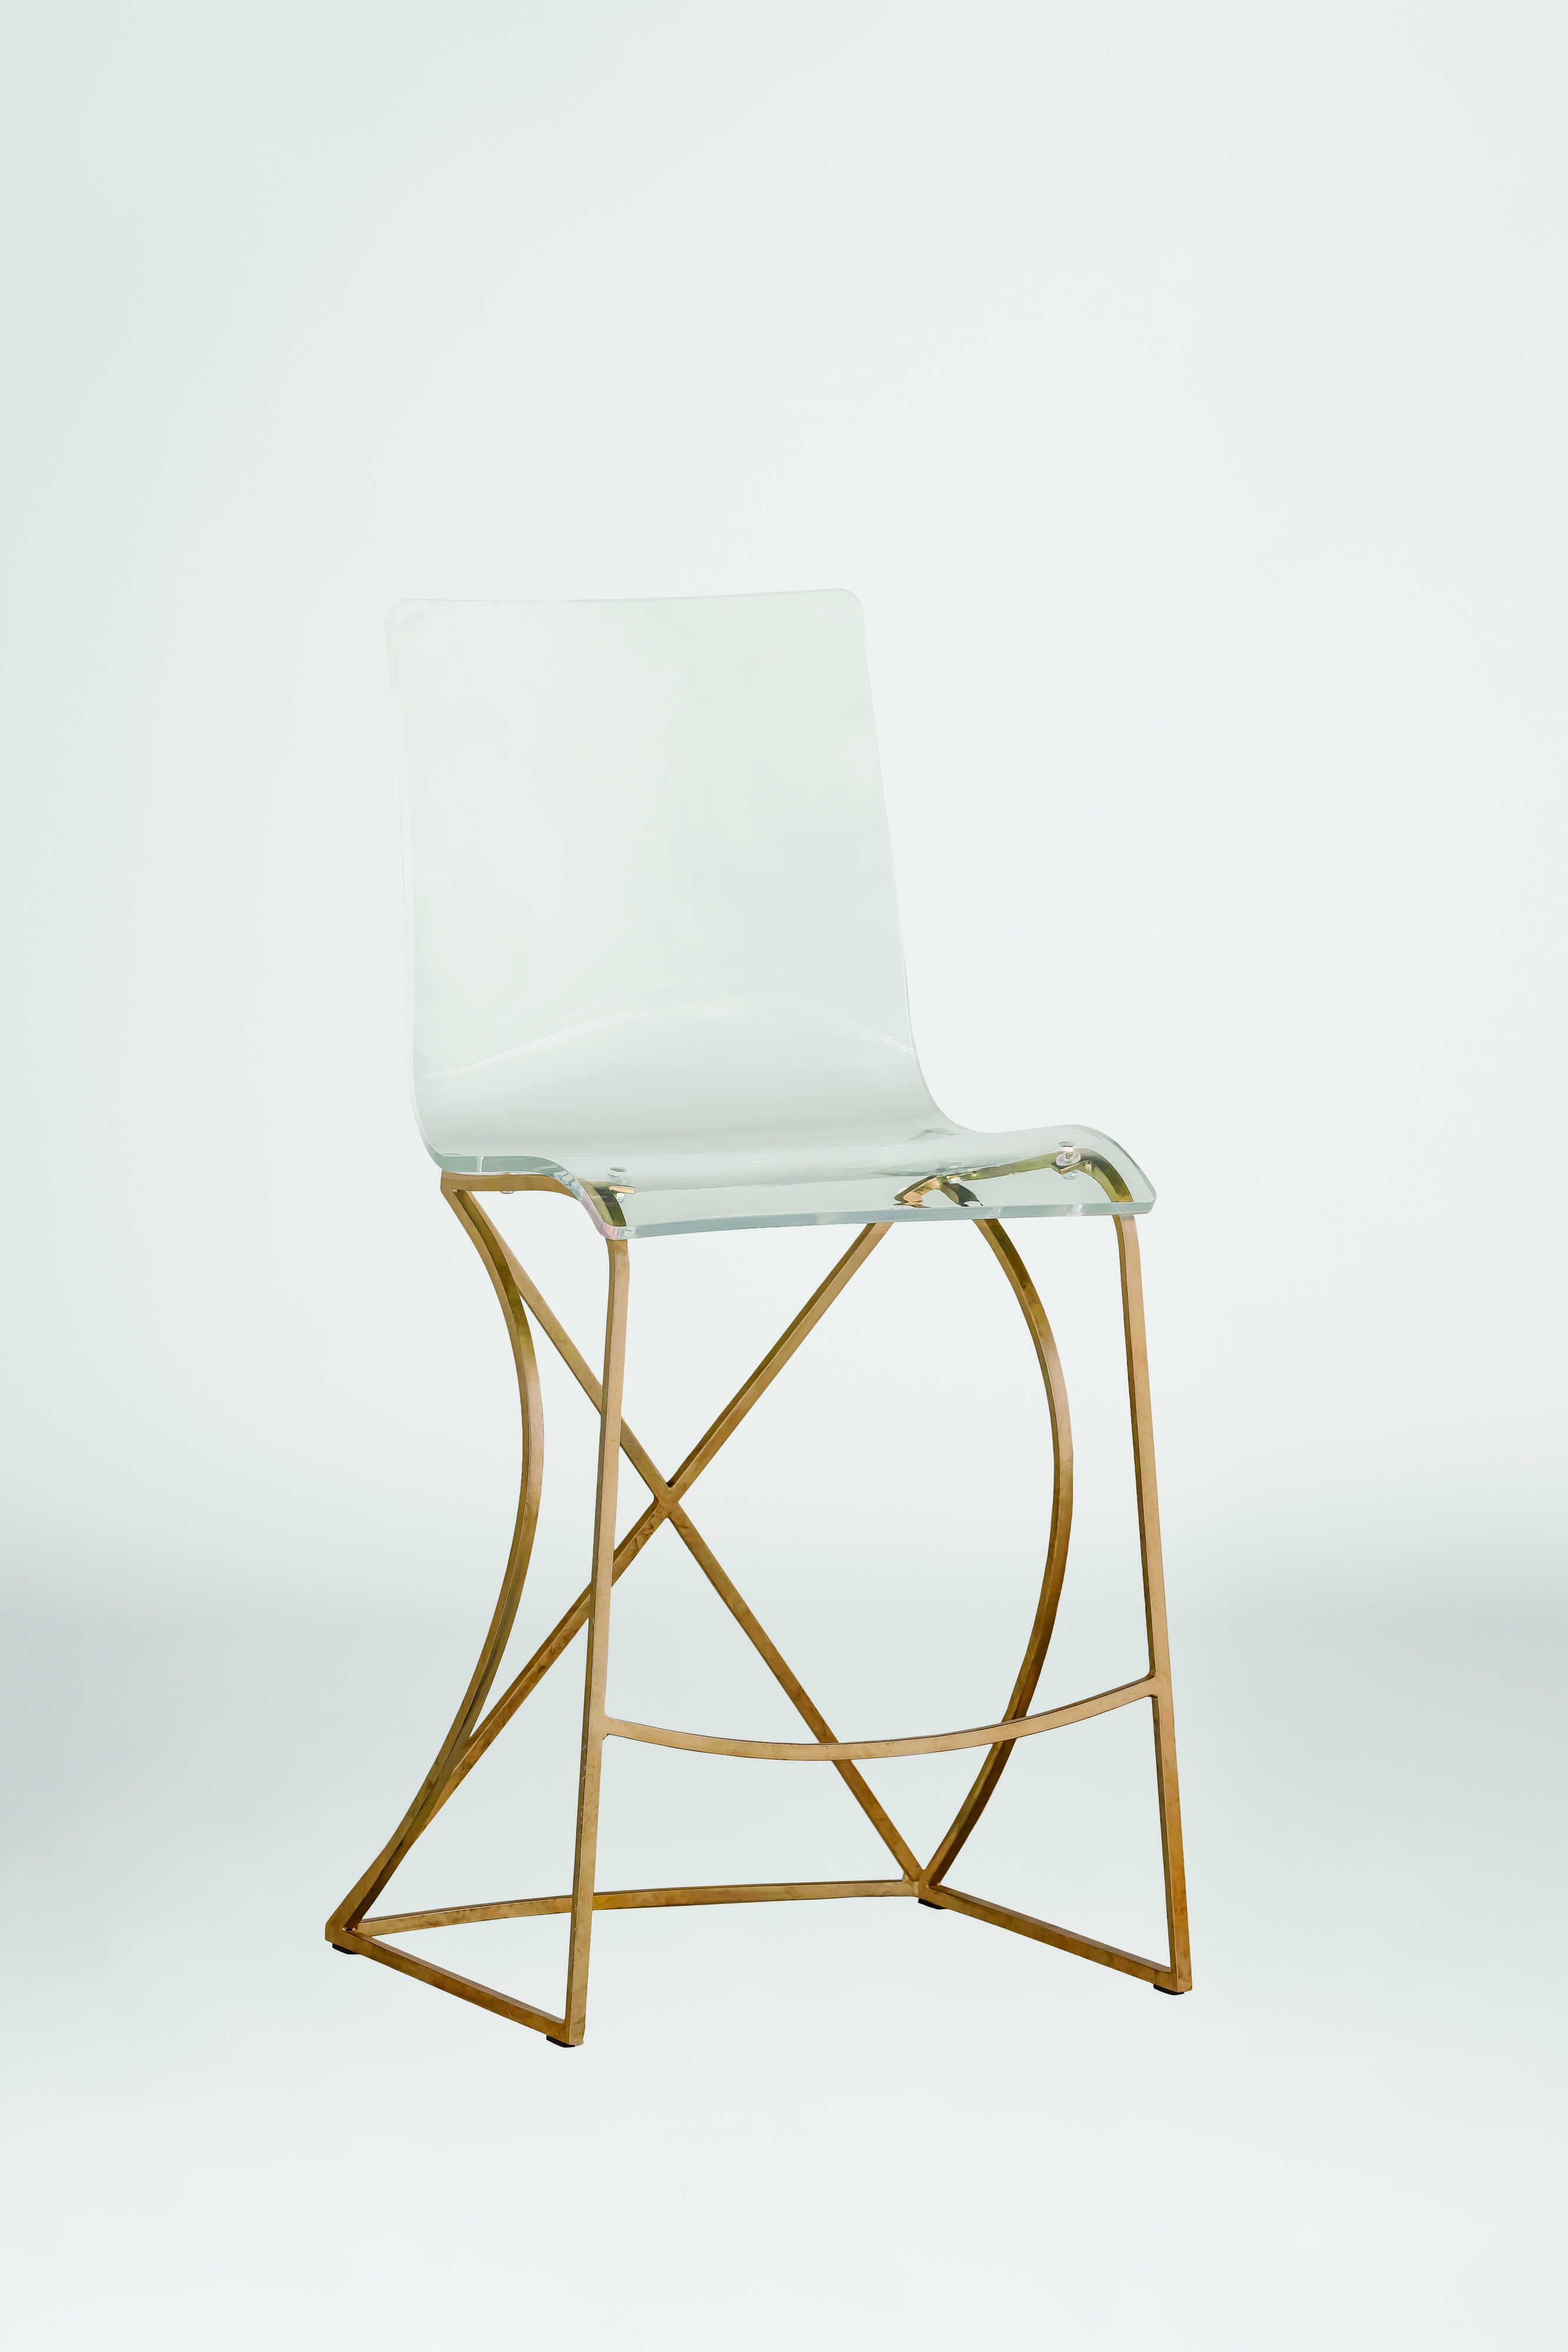 Gabby Johnson Antique Gold Amp Clear Acrylic Counter Stool